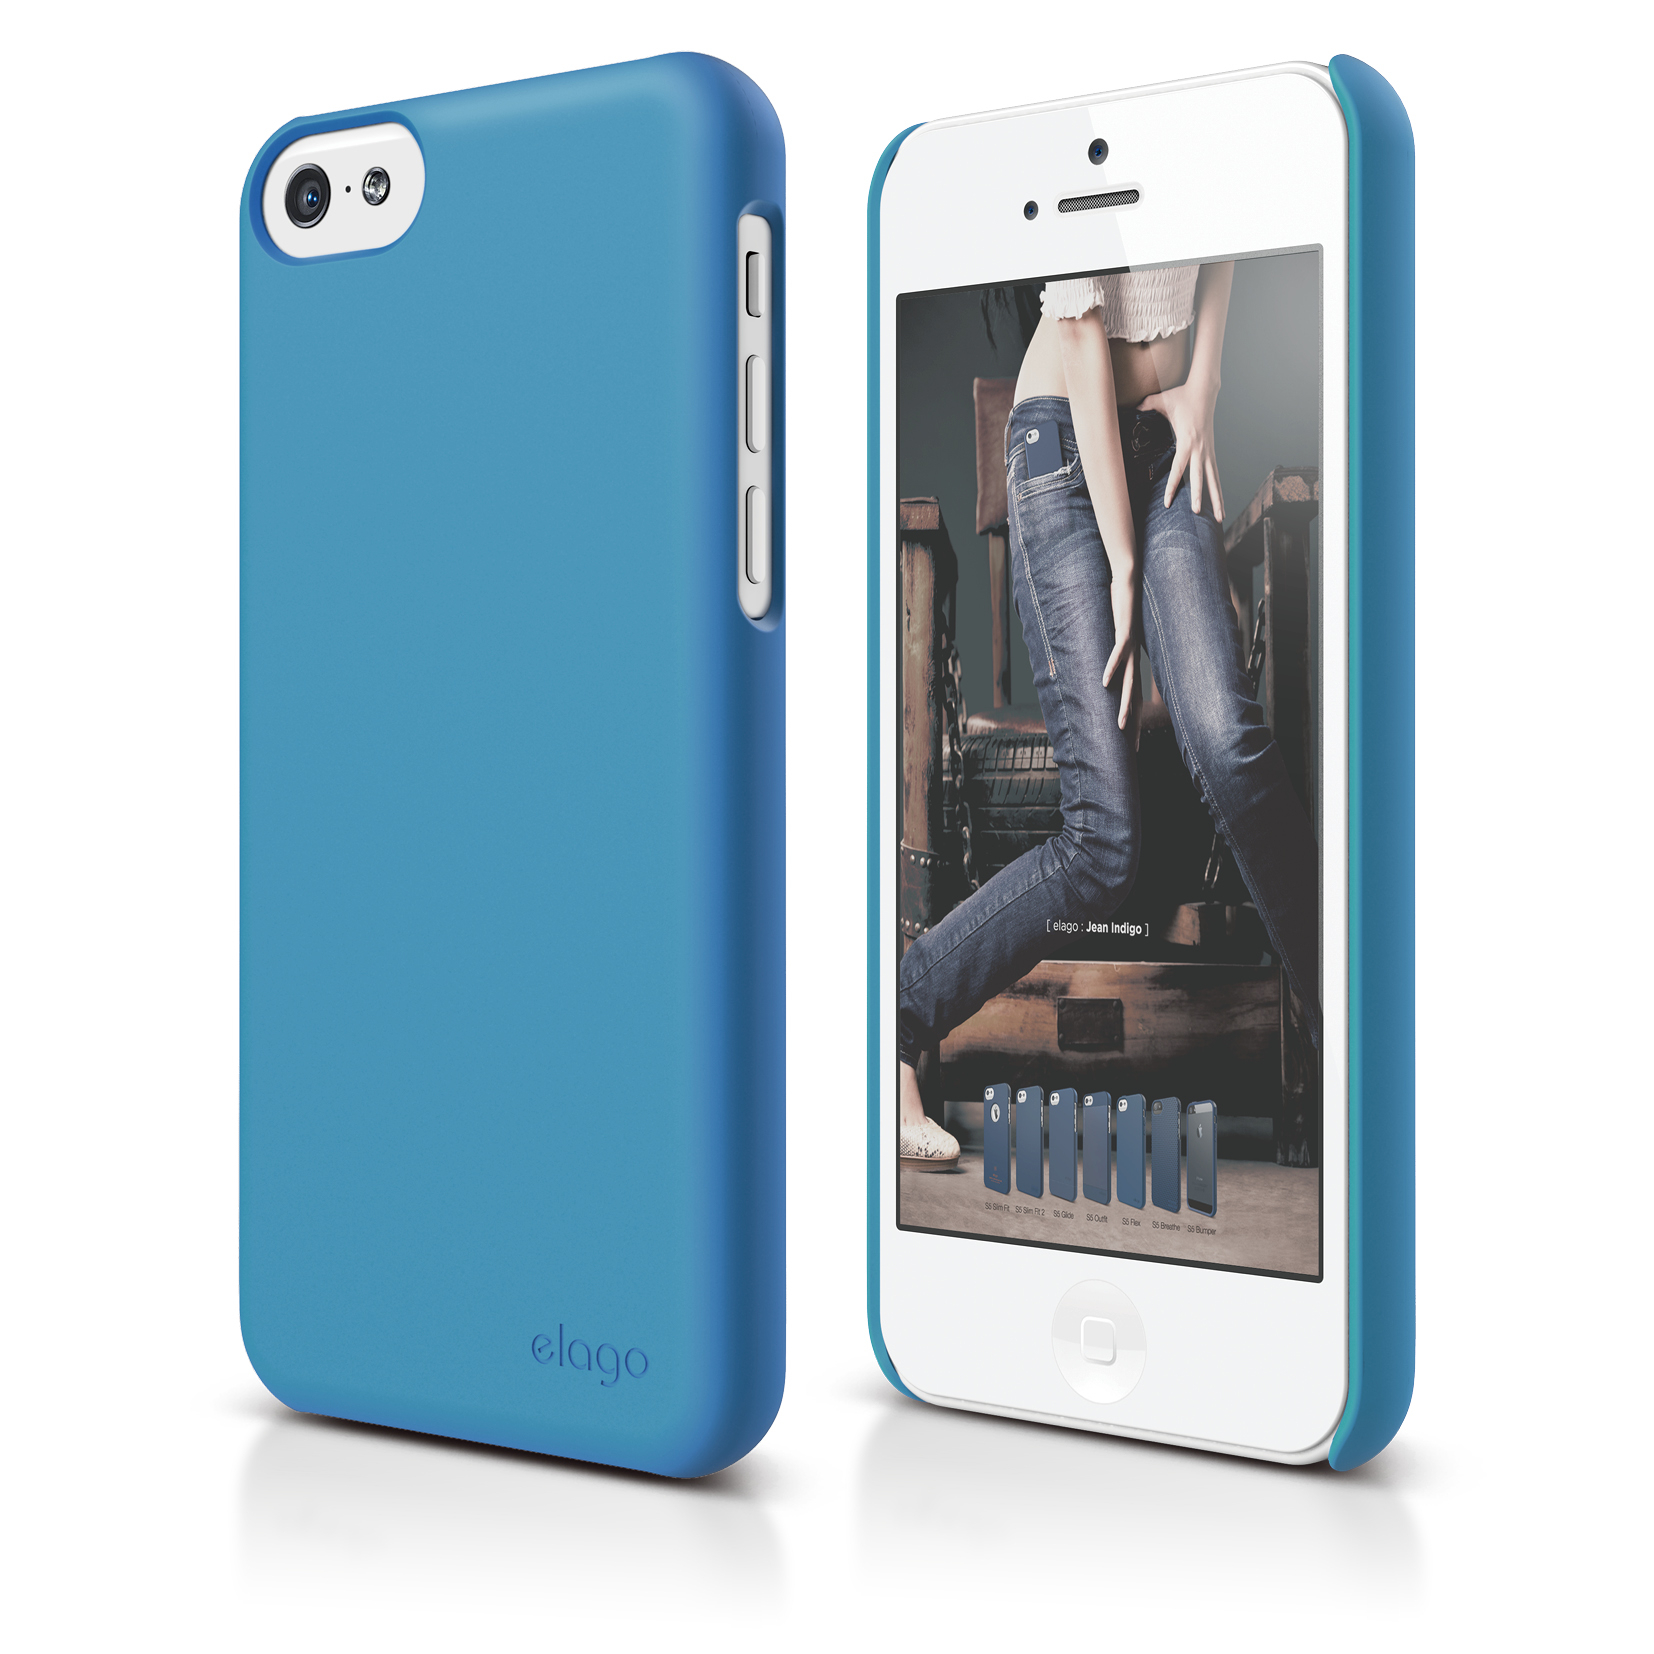 Elago C5 Slim Fit 2 Case + HD Clear Film - кейс и HD покритие за iPhone 5C (син-матиран)